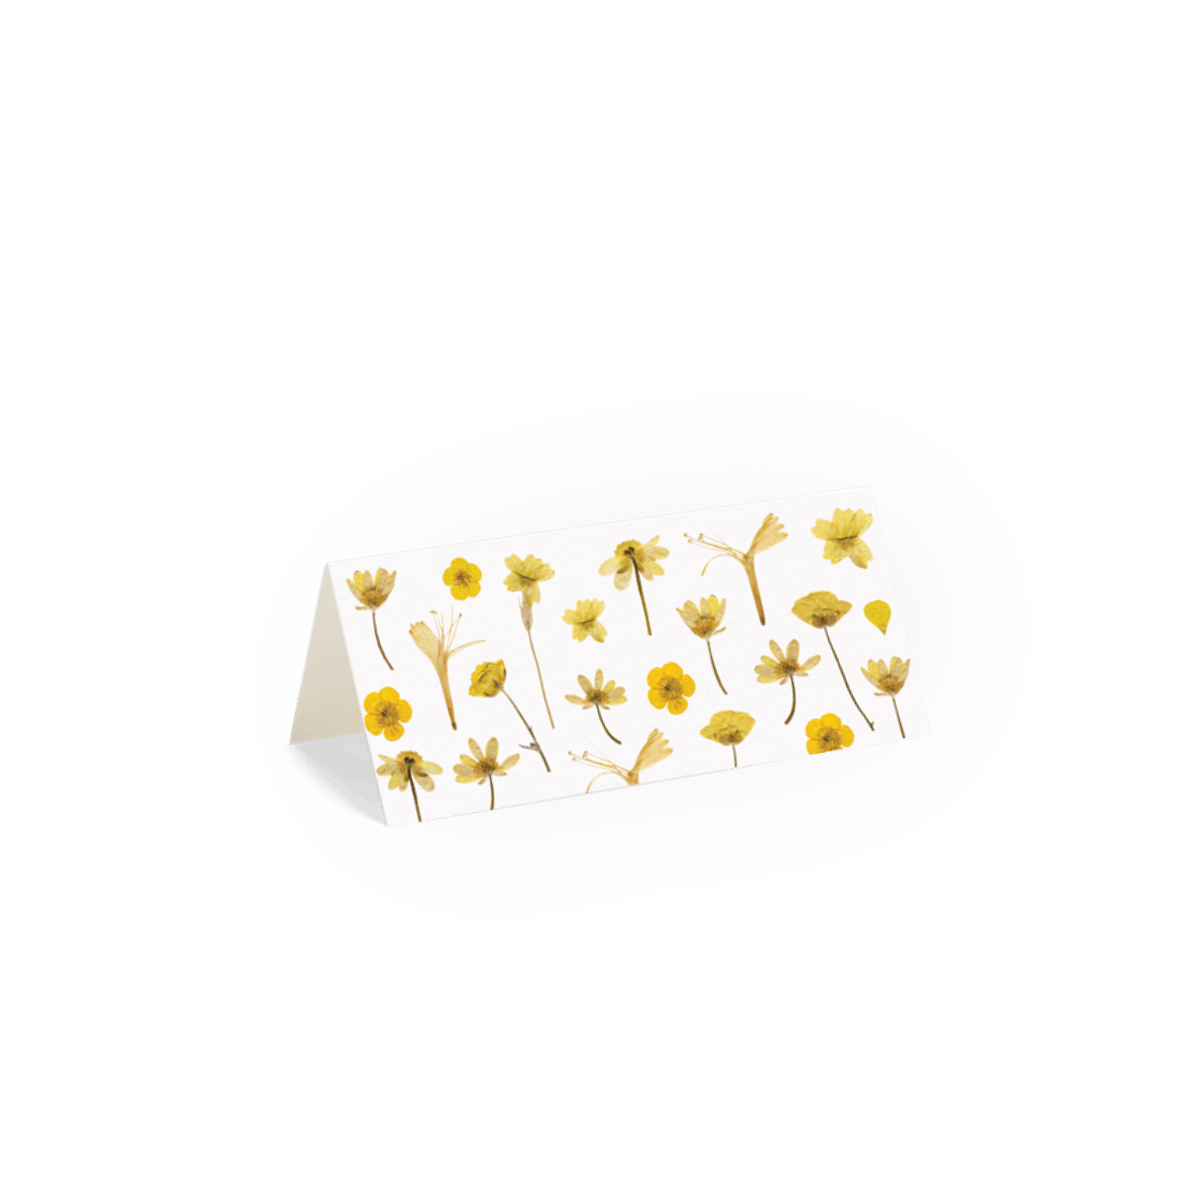 Https%3a%2f%2fwww.papier.com%2fproduct image%2f82213%2f15%2fgolden meadow 19858 back 1562073416.png?ixlib=rb 1.1